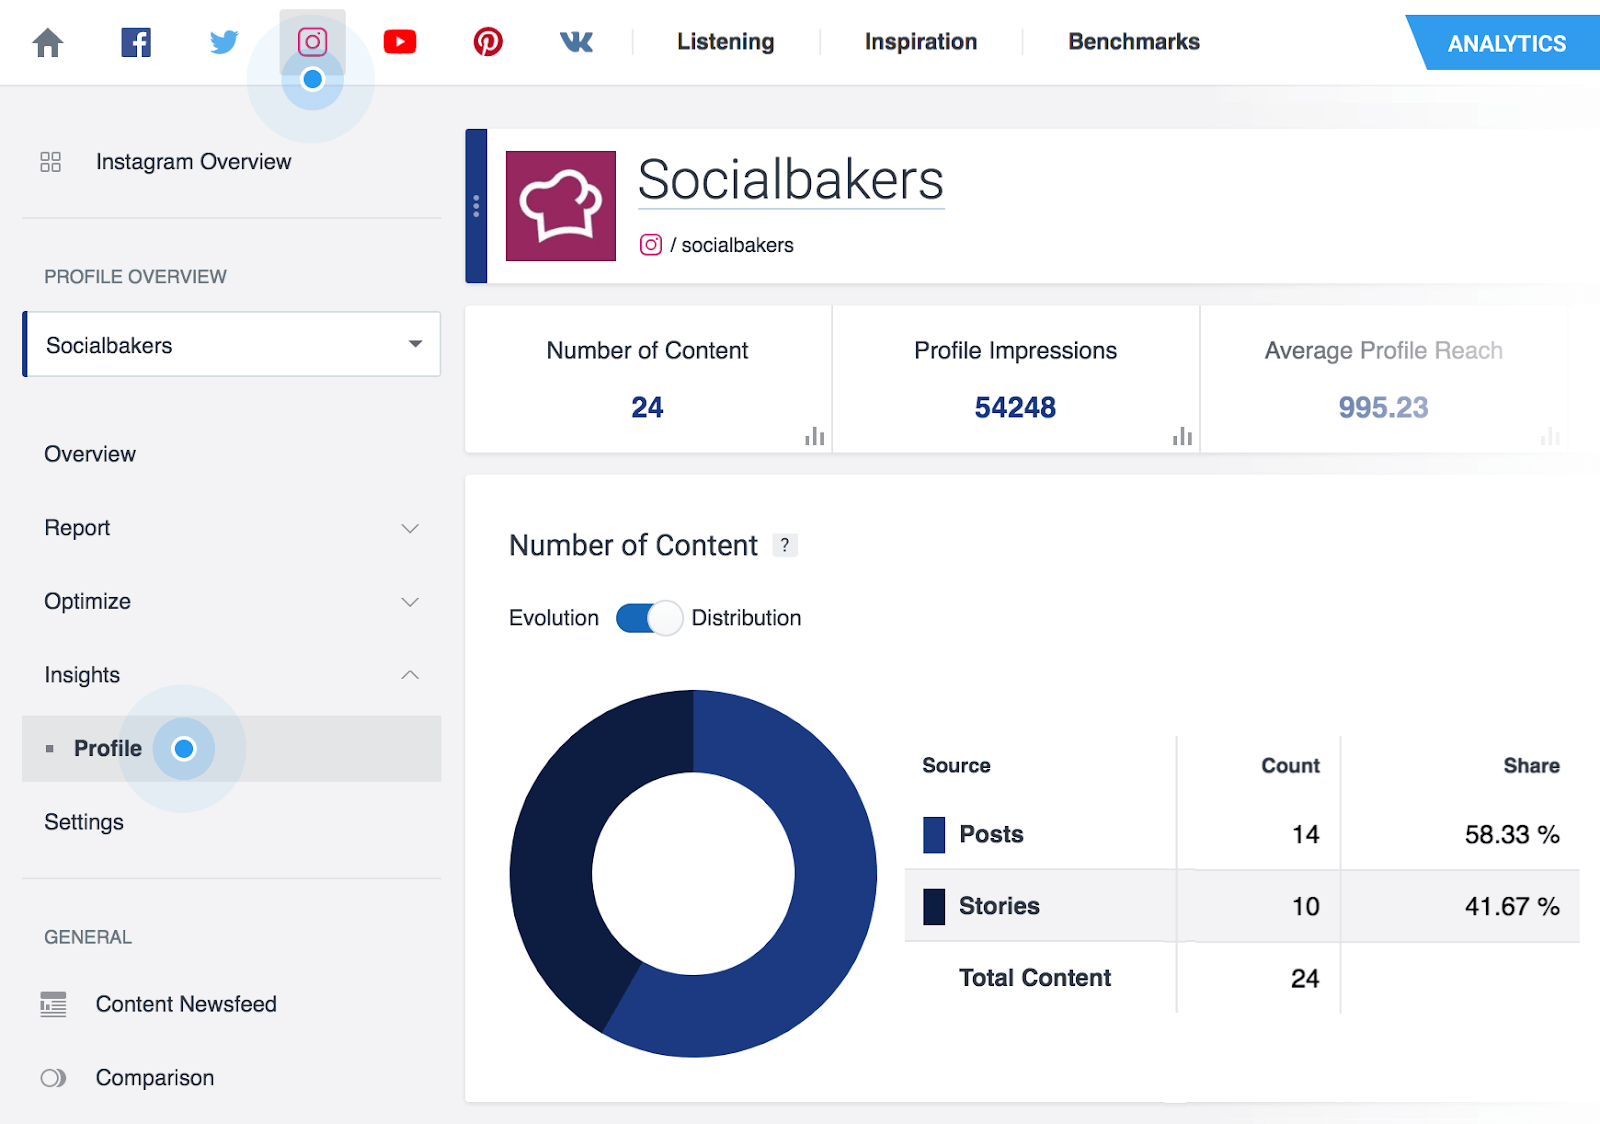 Socialbakers to understand social media audience